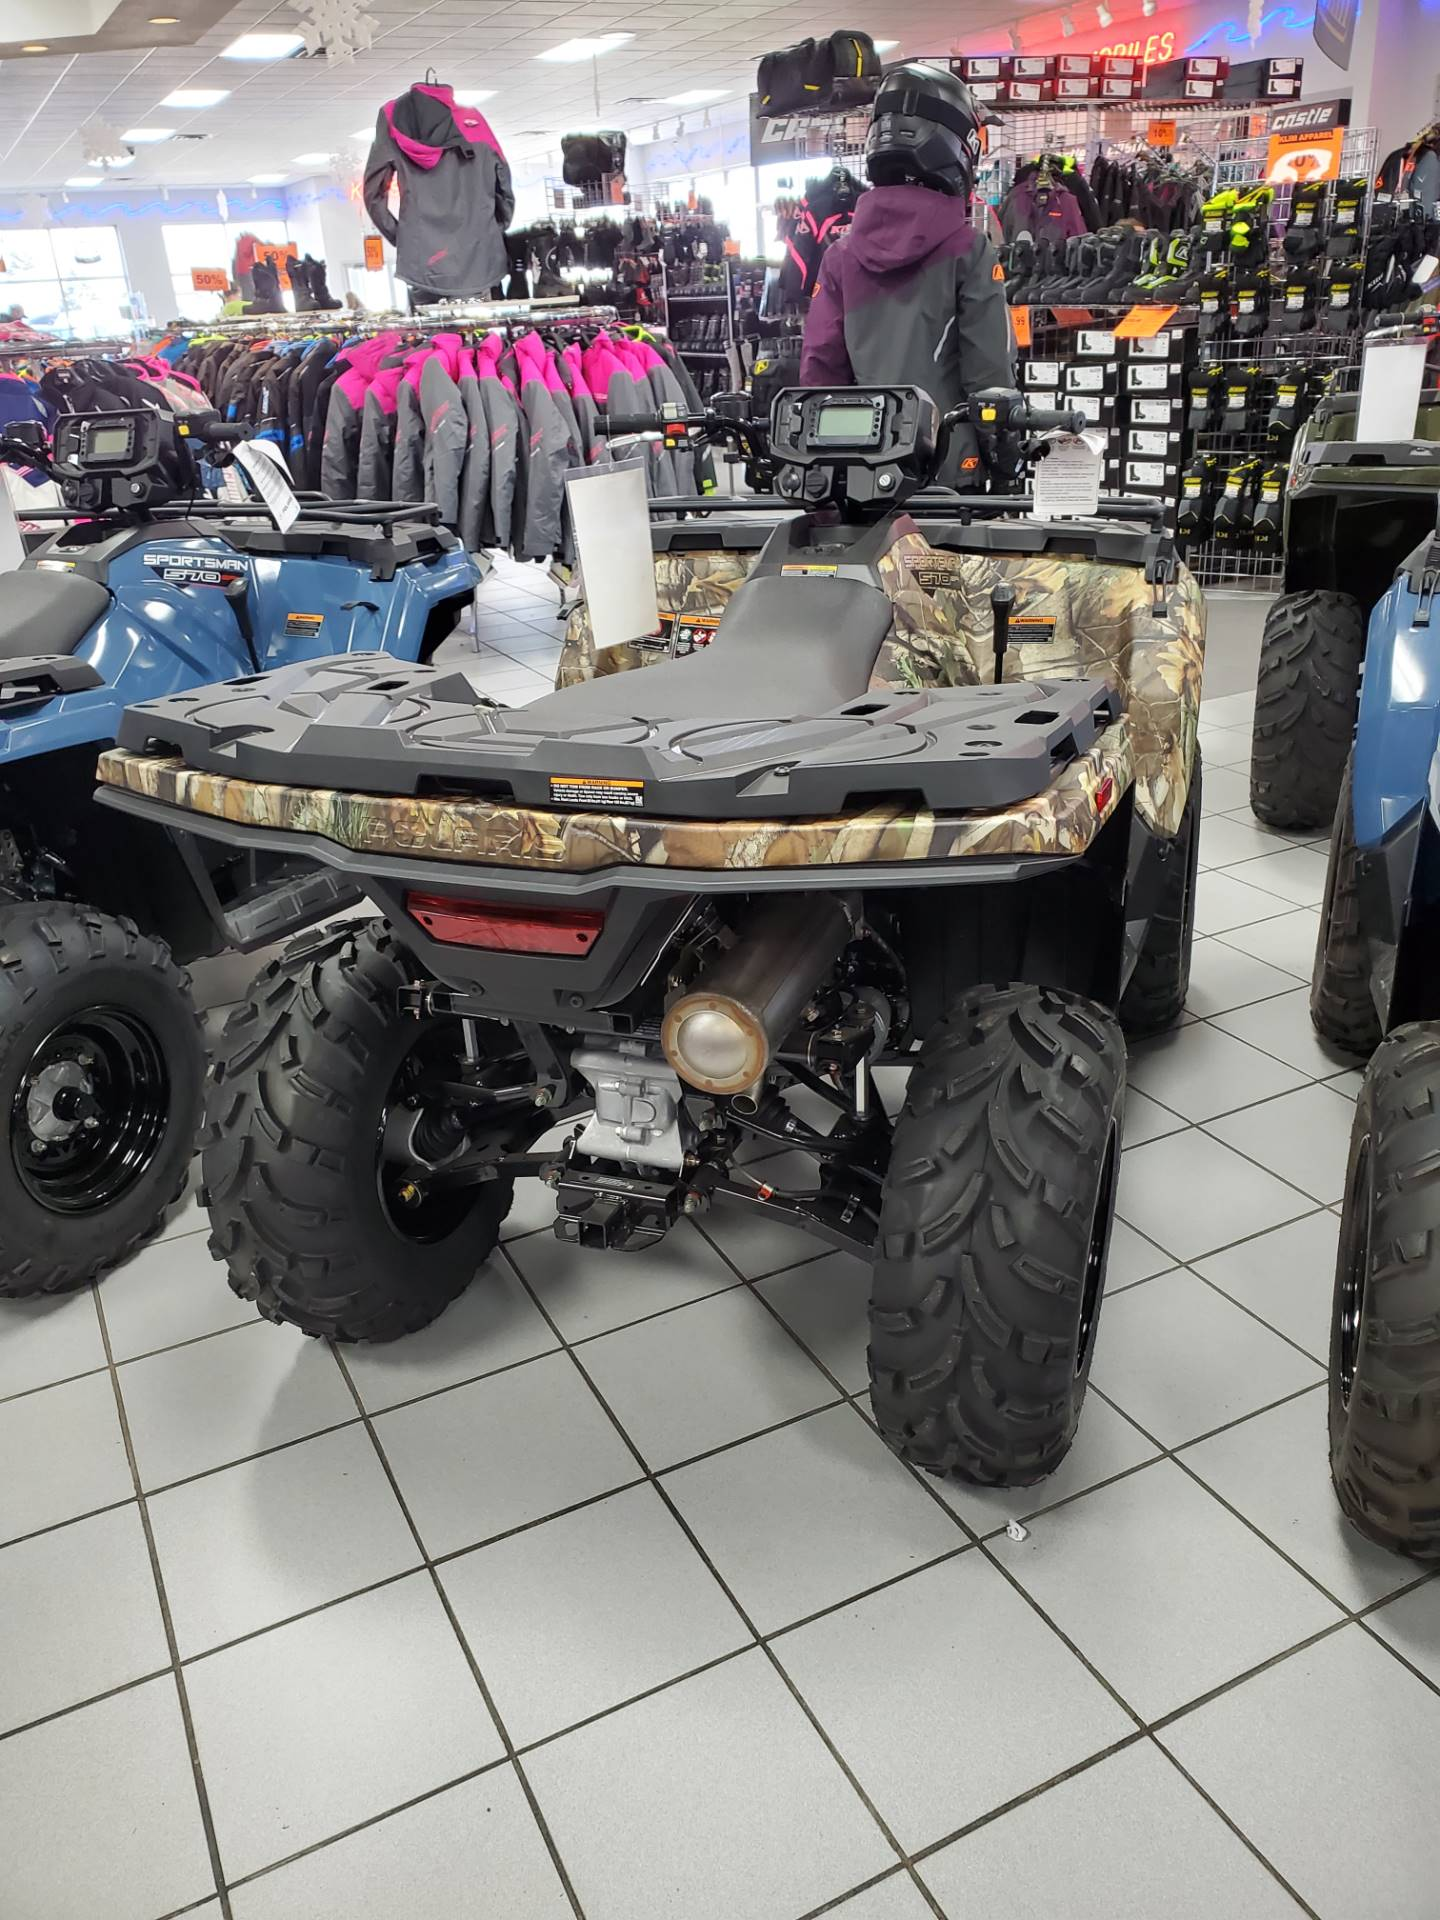 2021 Polaris Sportsman 570 in Kaukauna, Wisconsin - Photo 3